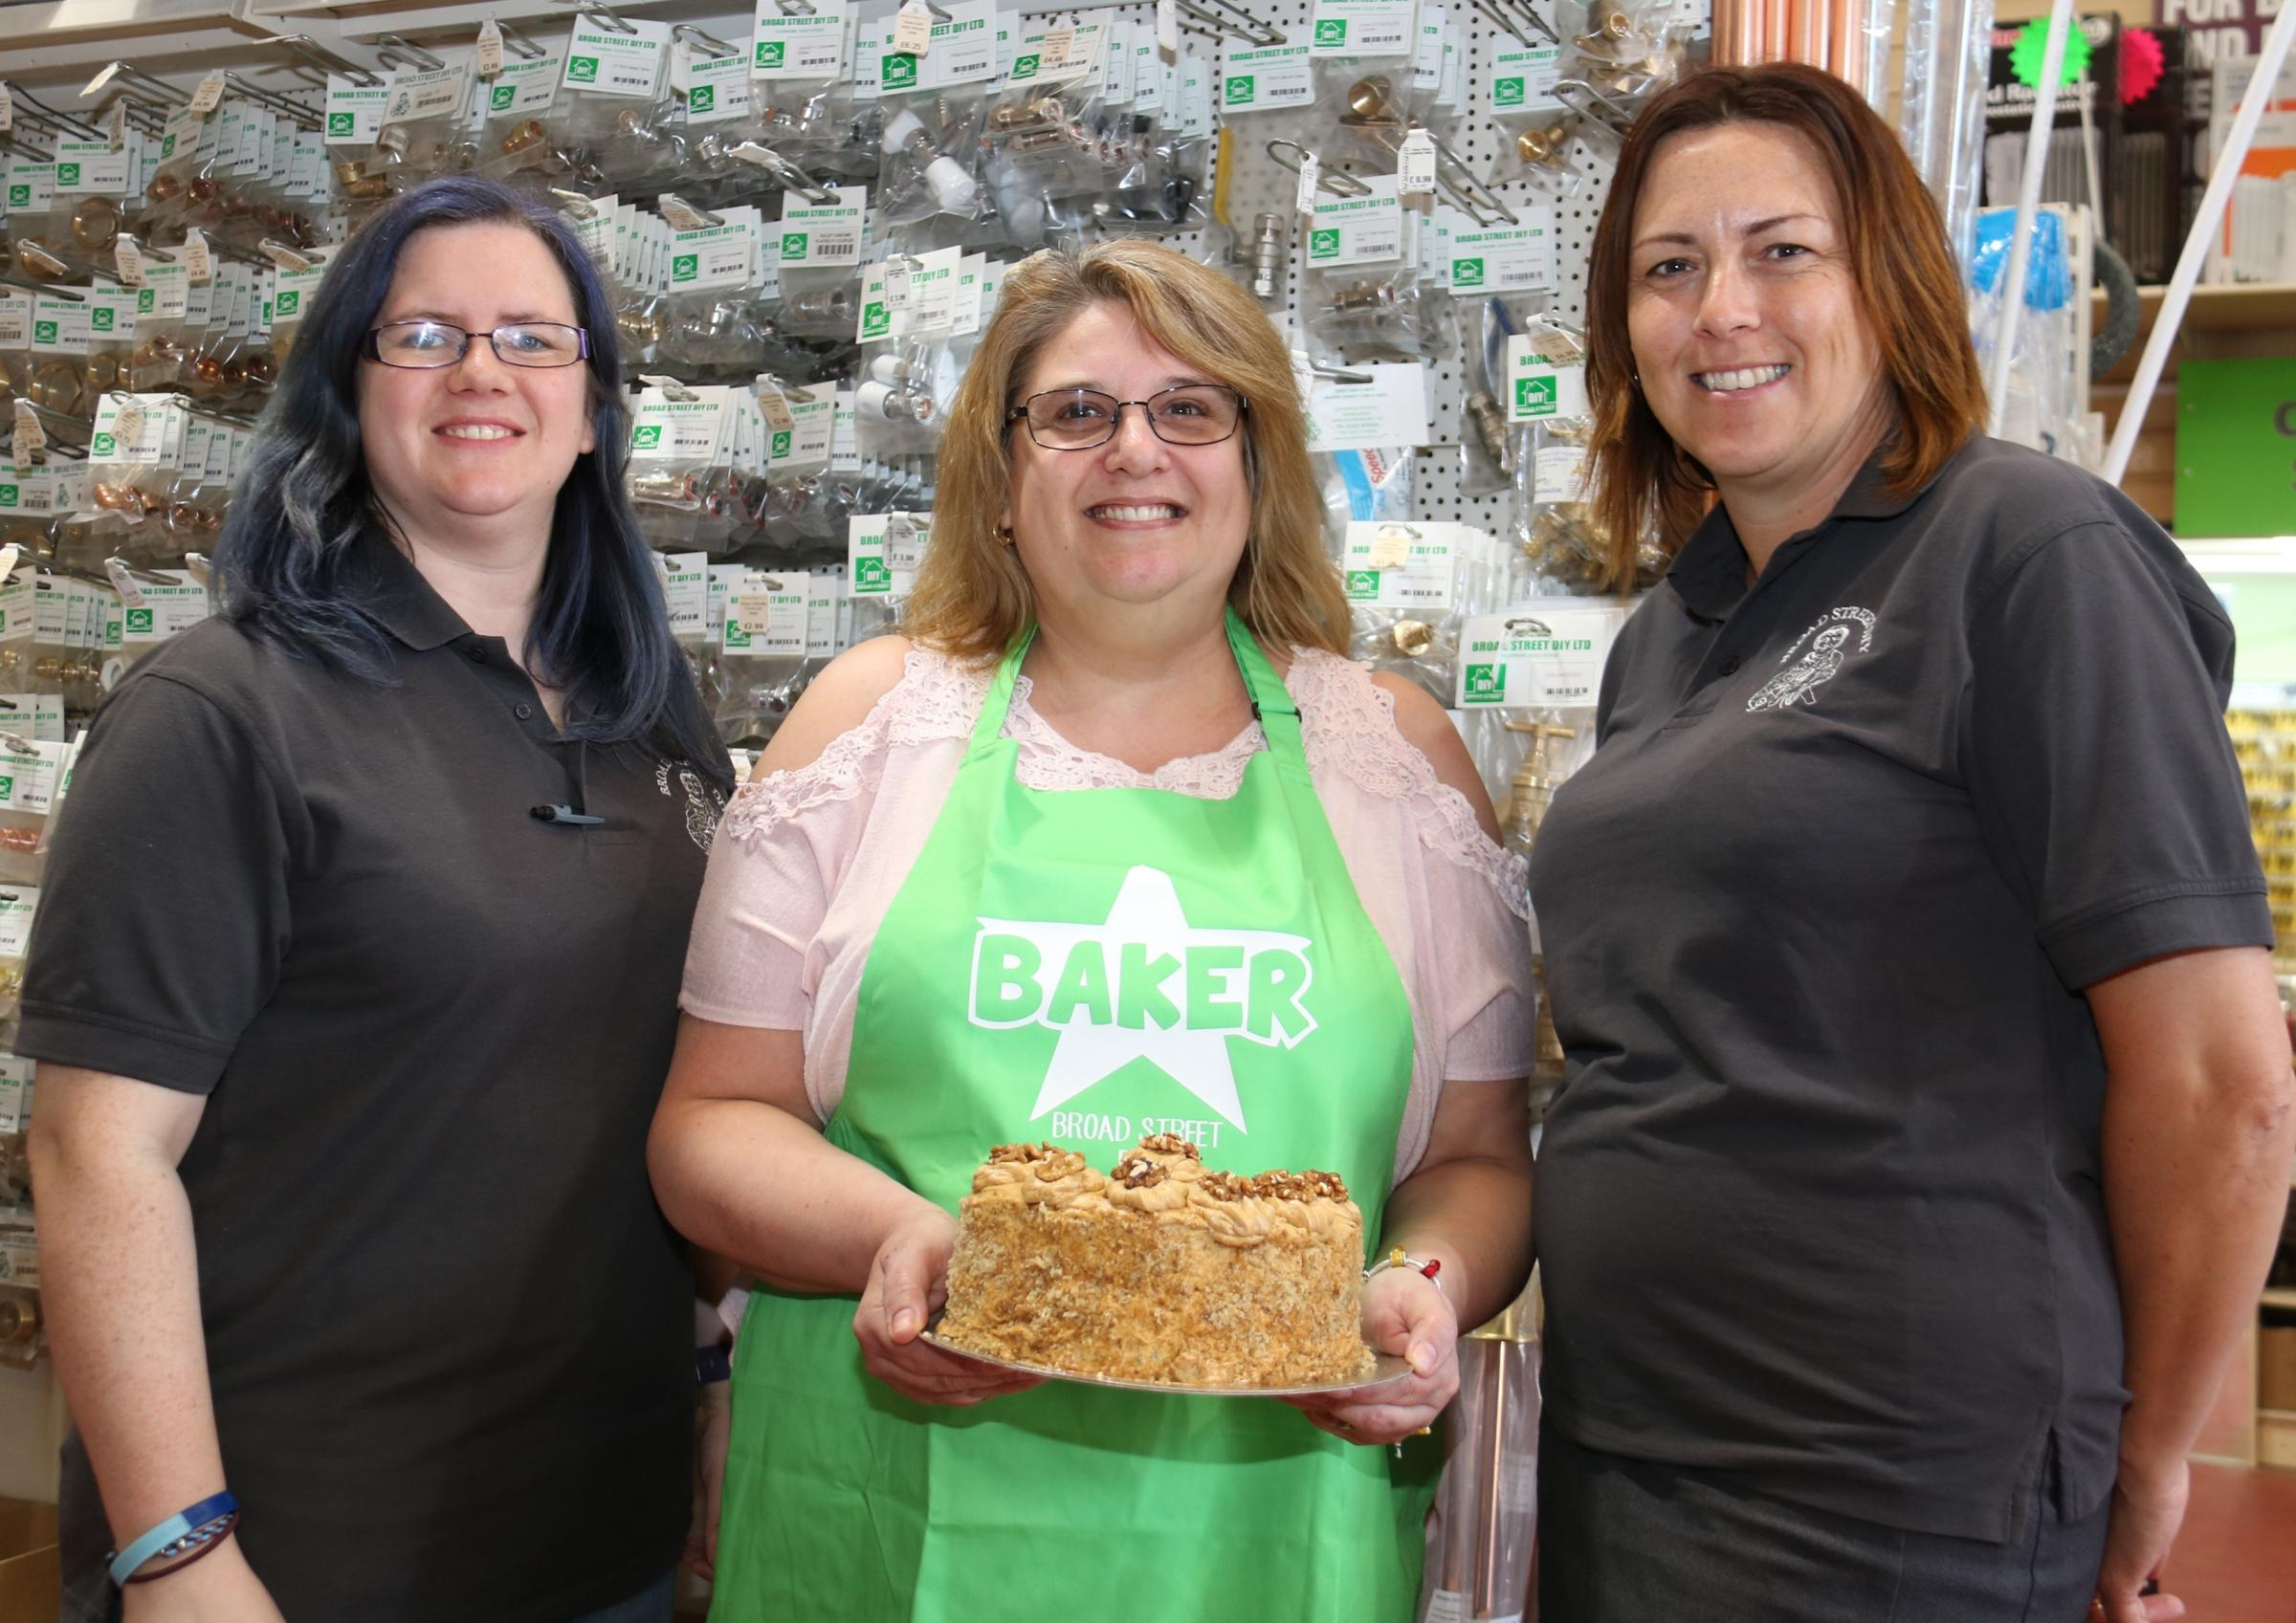 Lisa Childs, Broad Street DIY Star Baker Jo Chatwin, and Hayley Warren